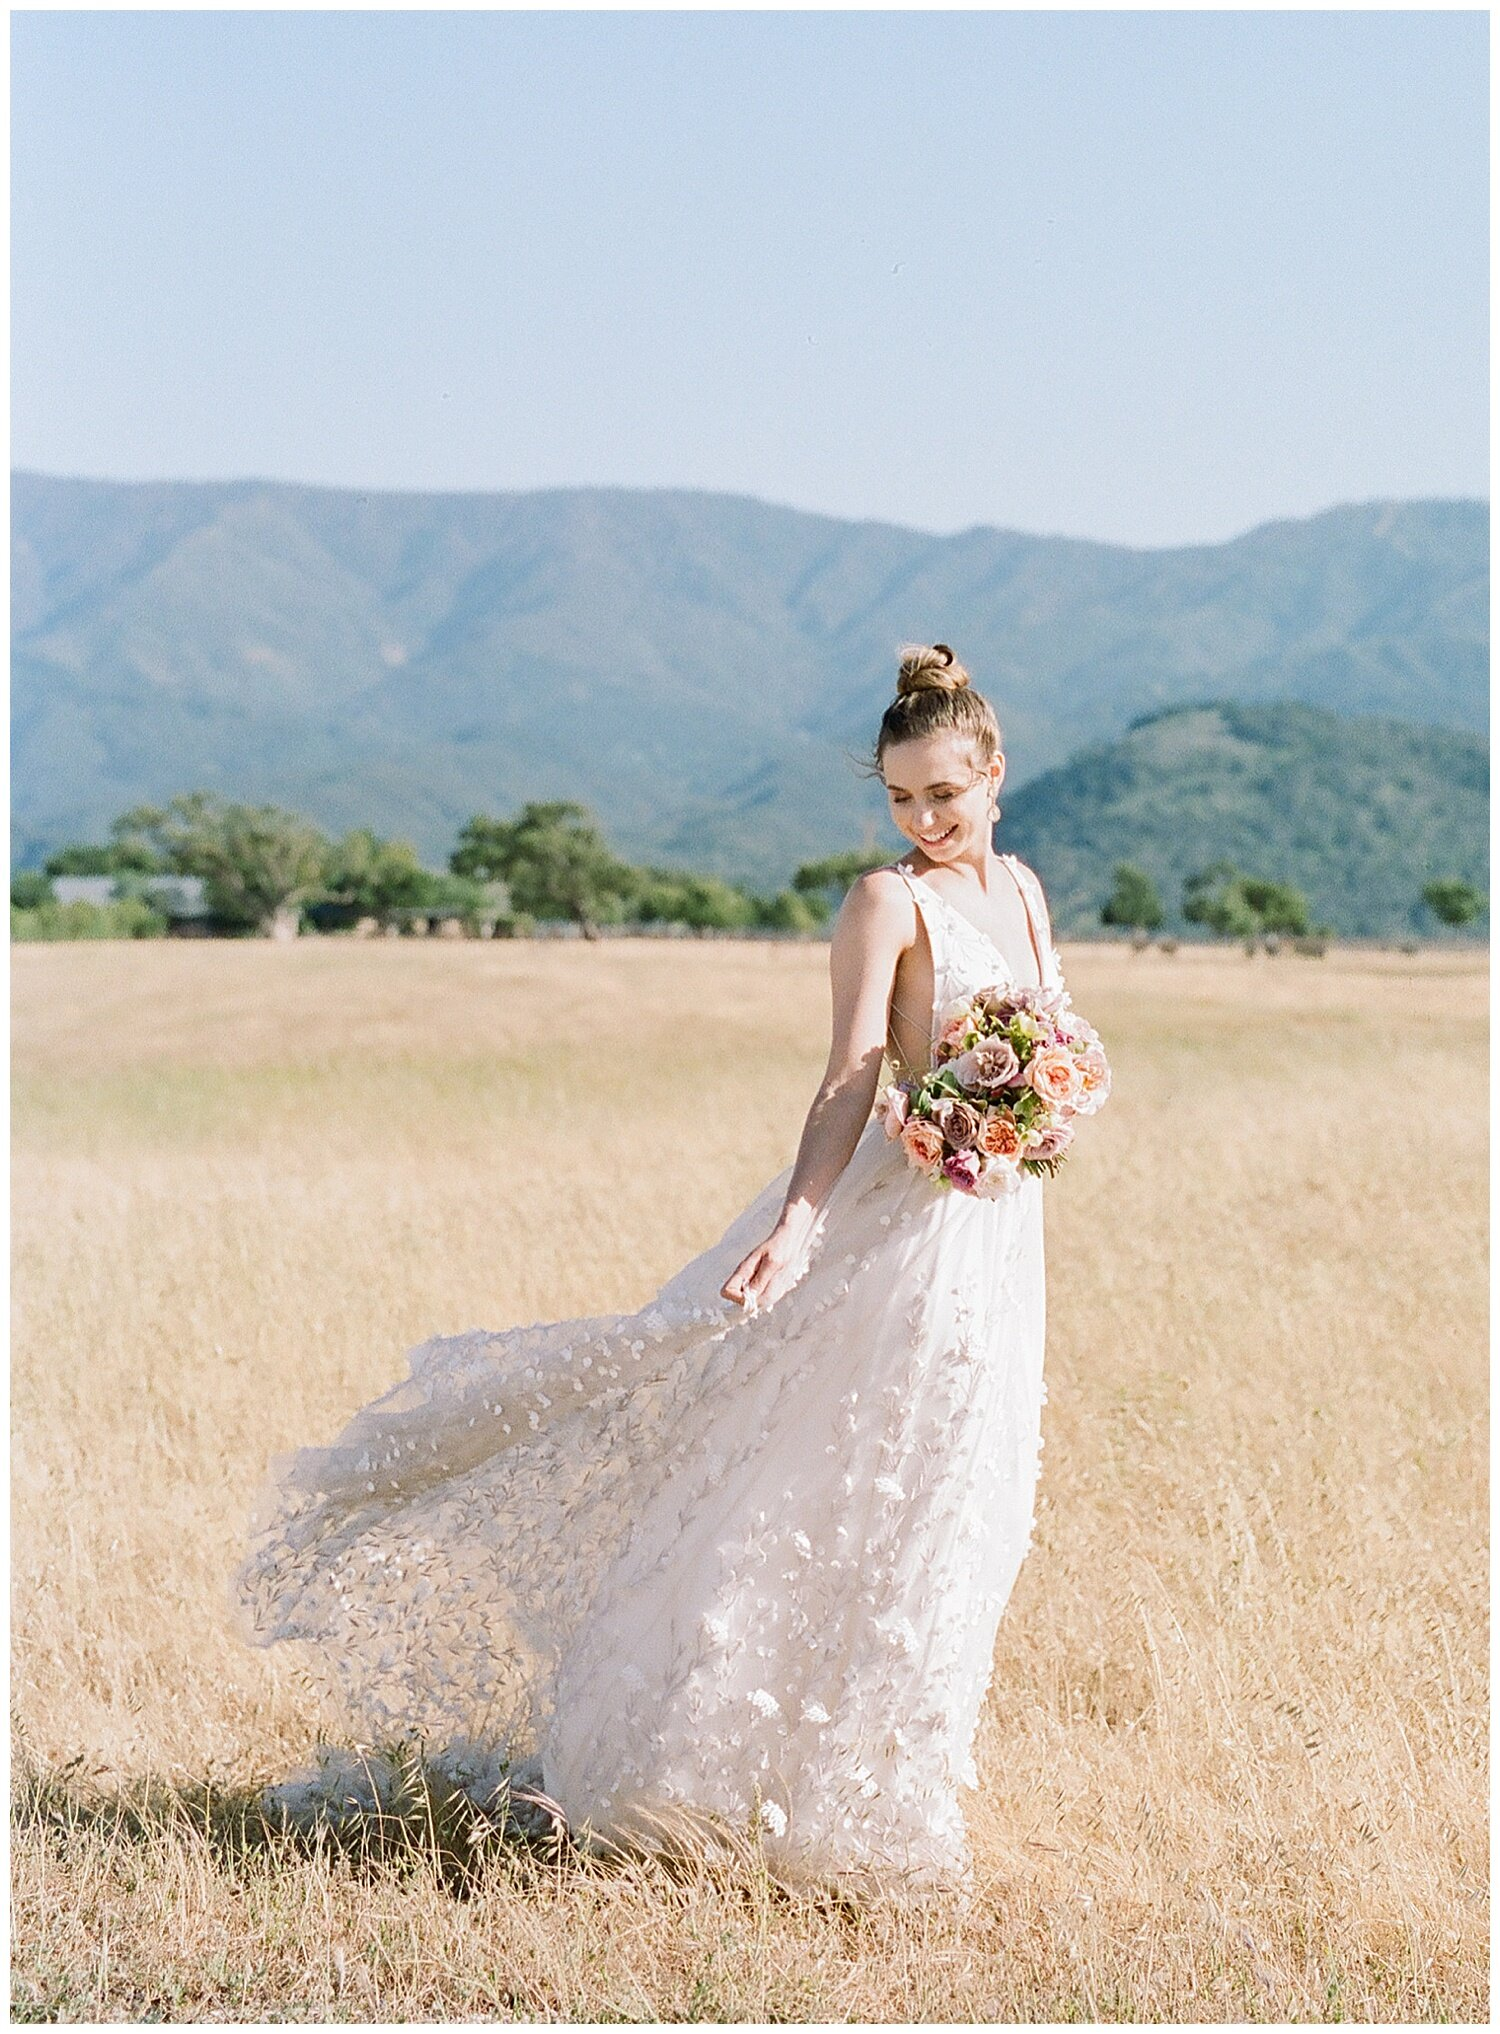 Janine_Licare_Photography_San_Francisco_Kestrel_Park_Santa_Ynez_Sunstone_Villa_Winer_Wedding_Photographer_Meadowood_Napa_Valley_Sonoma_0064.jpg